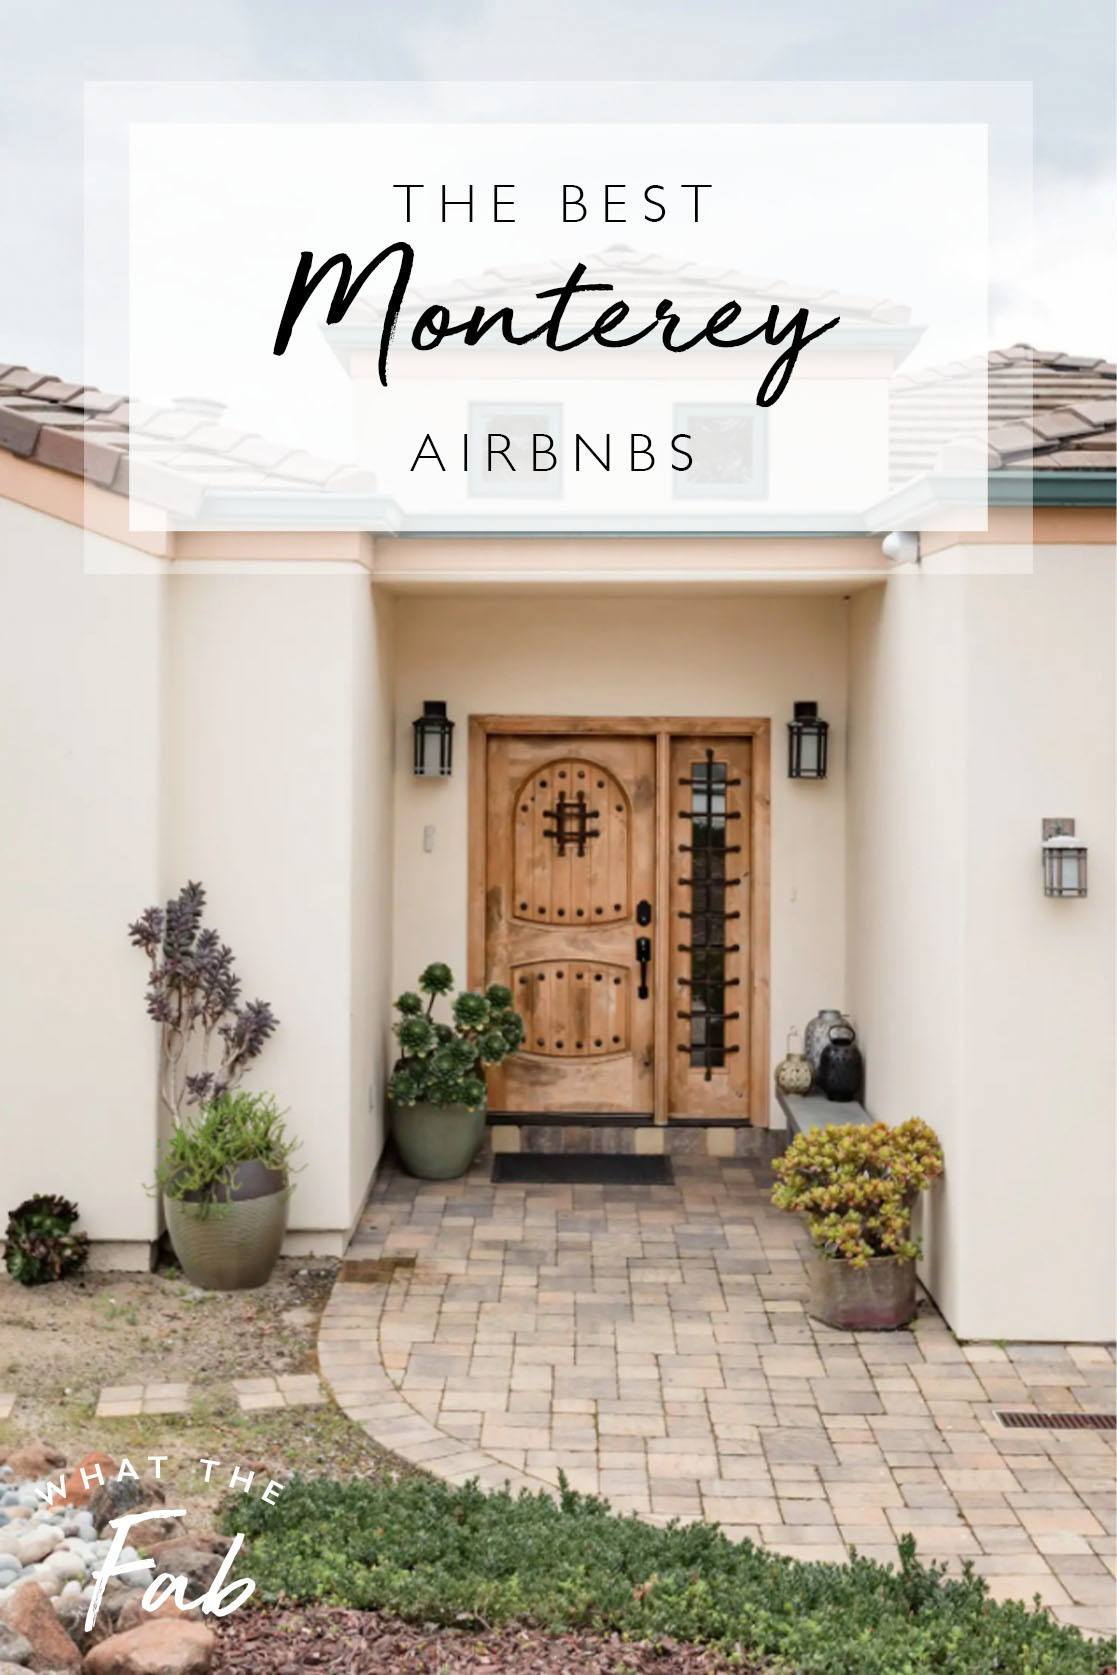 Airbnb Monterey guide, by Travel Blogger What The Fab